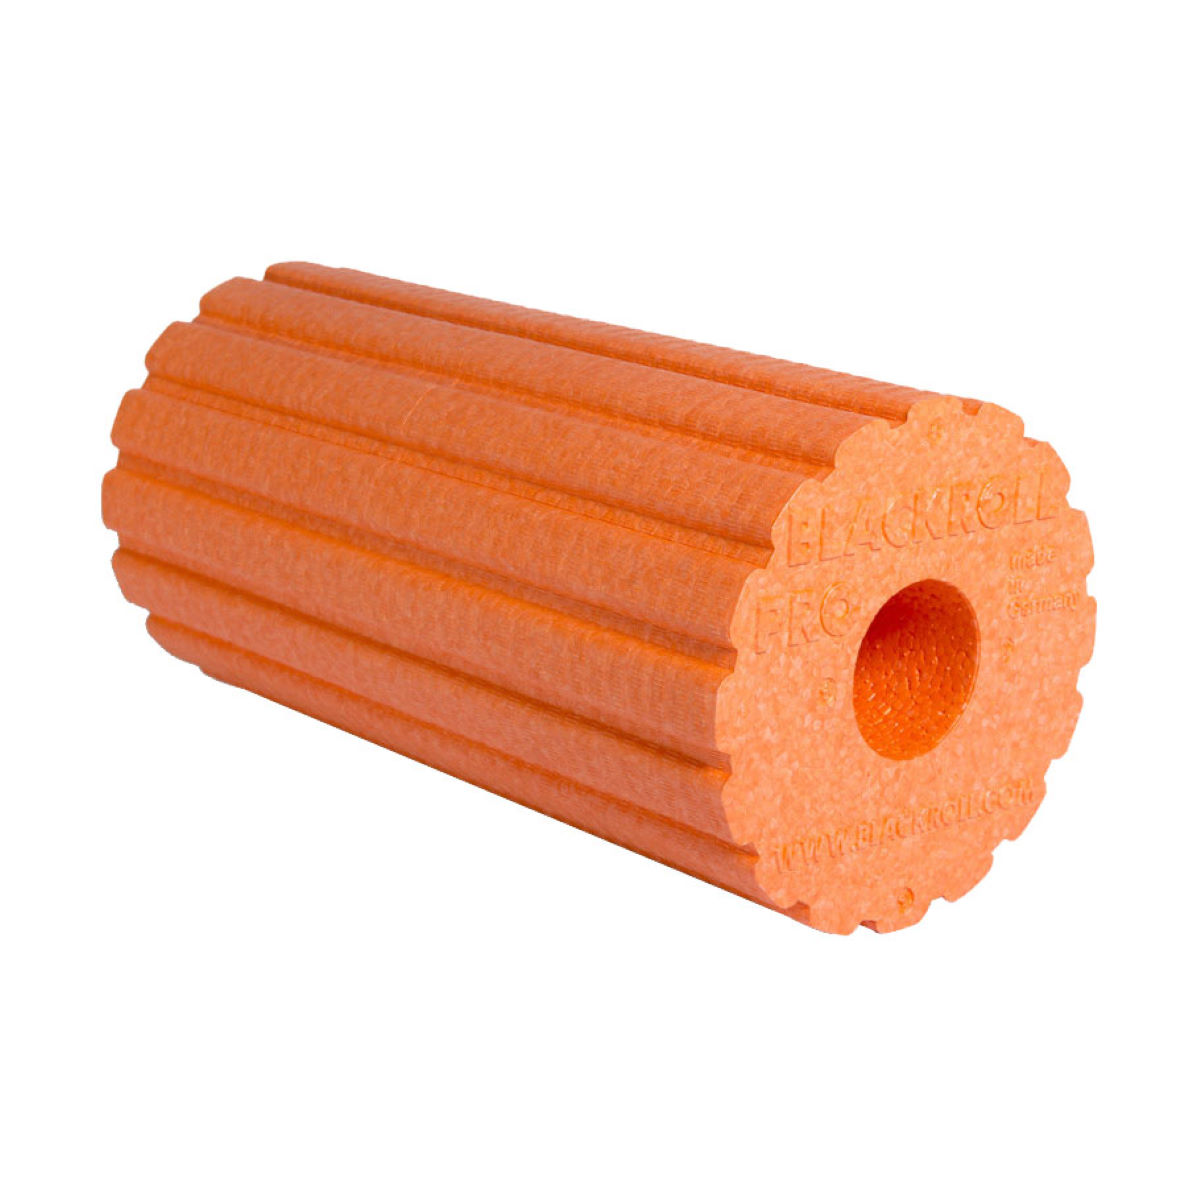 Rouleau BlackRoll Groove Pro - Orange Equipement fitness